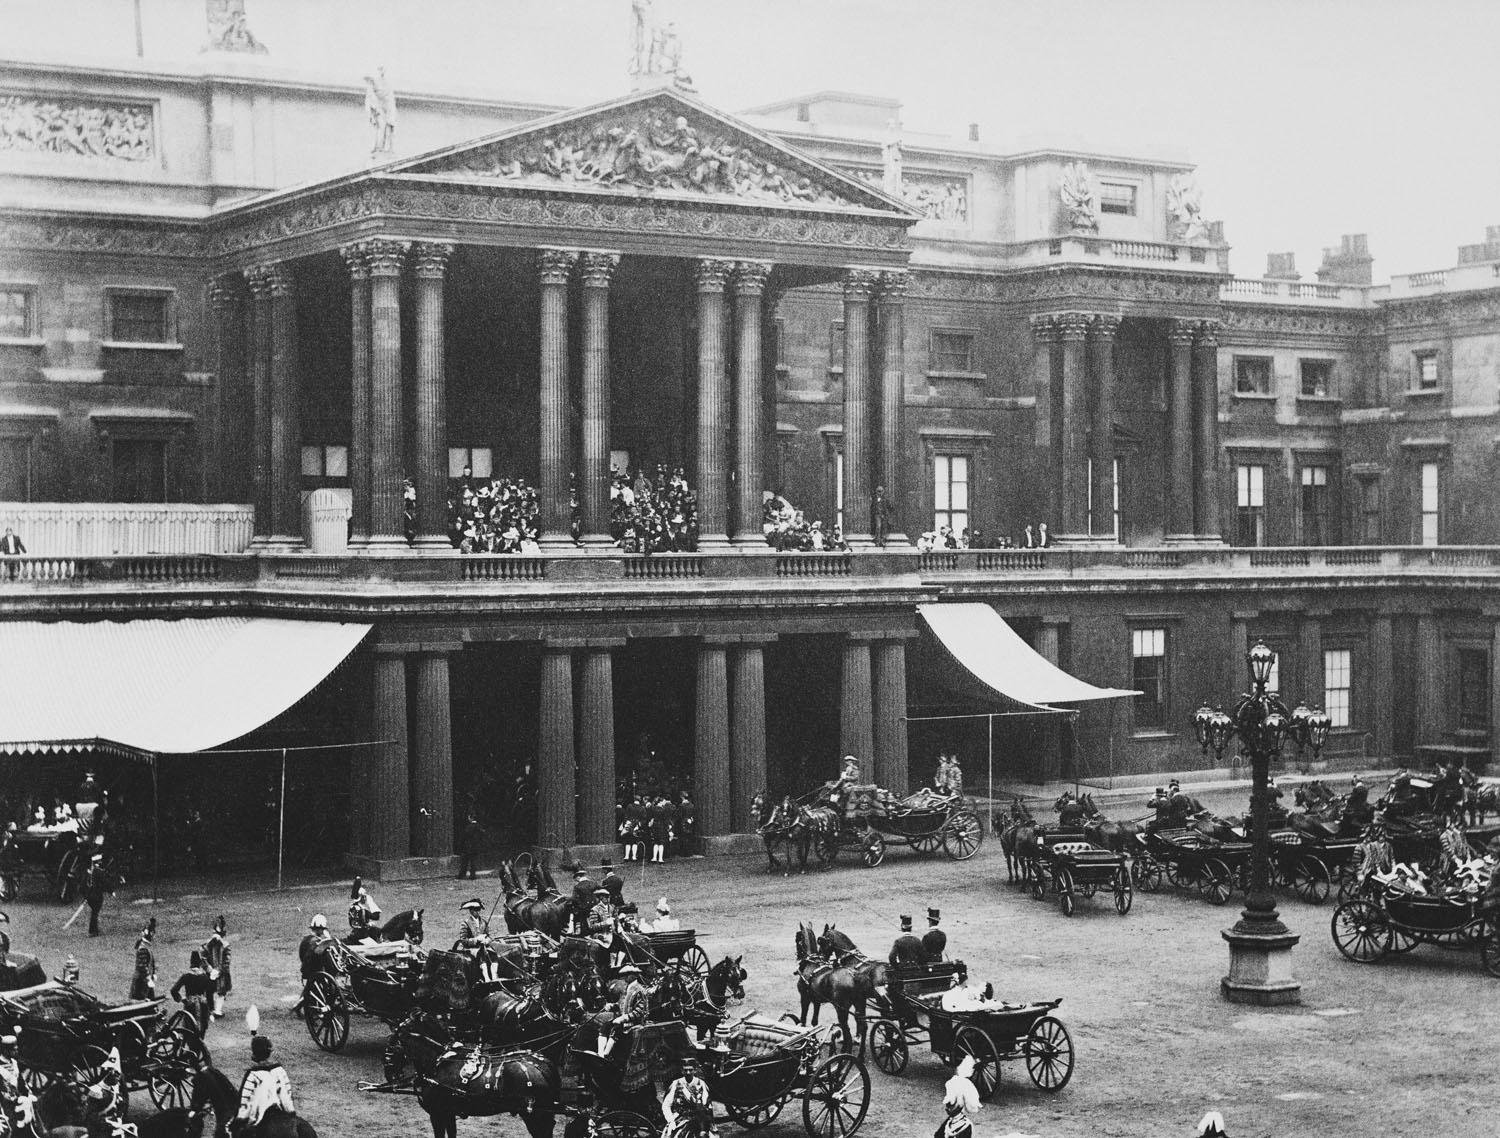 Buckingham palace during diamond jubilee of queen victoria